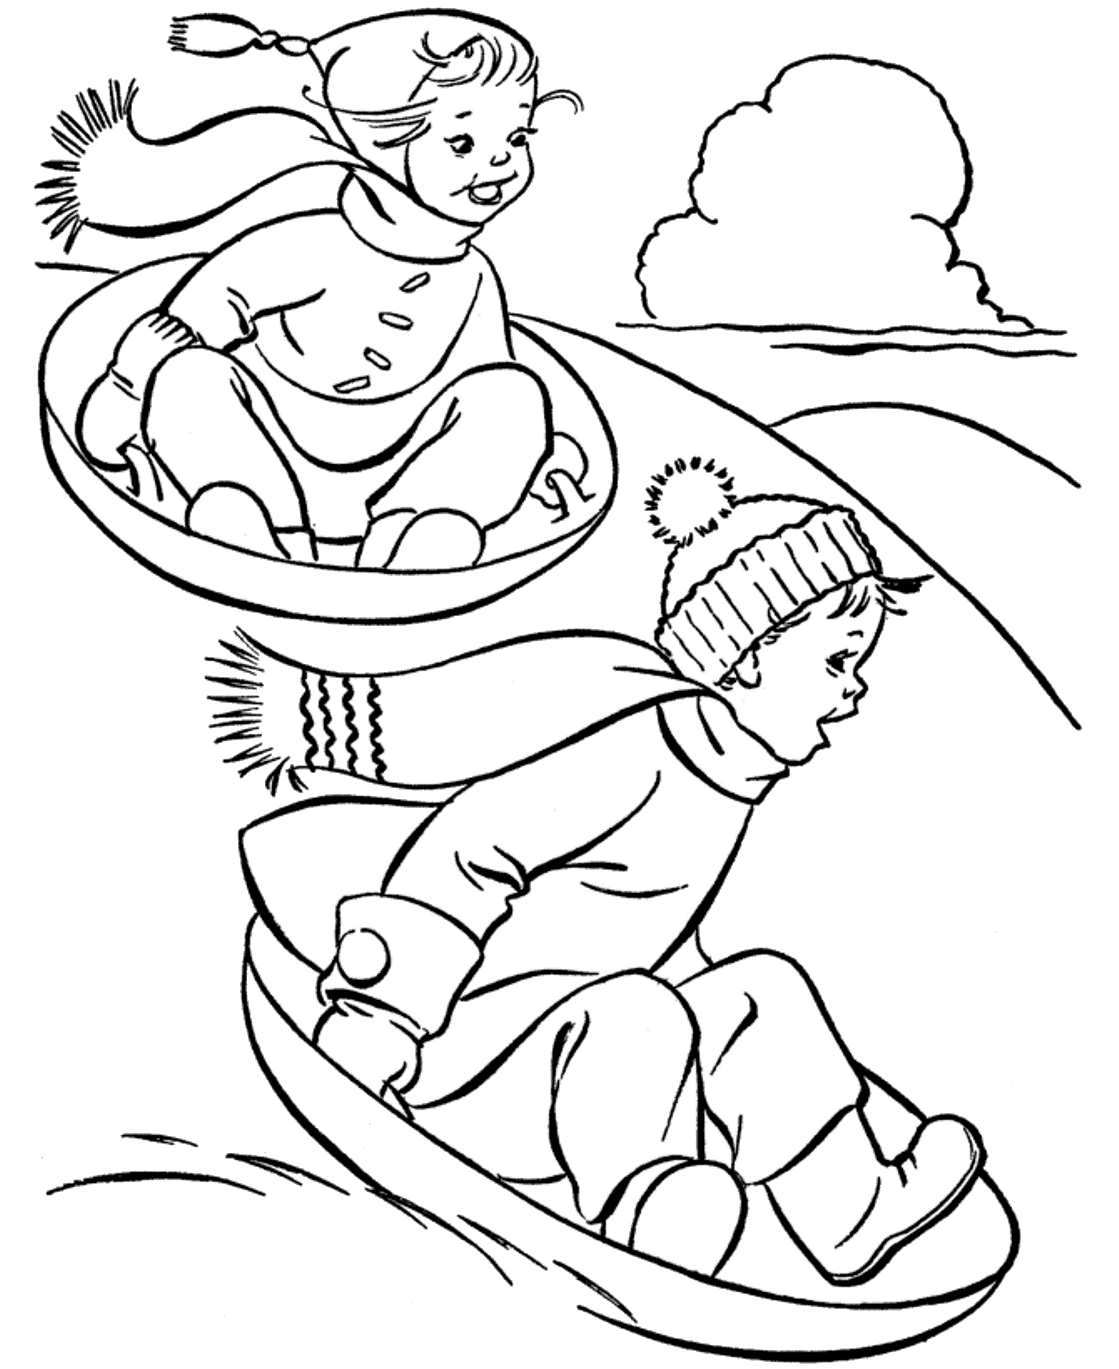 winter activities coloring pages | Sports Photograph Coloring Pages Kids: Winter Sports ...